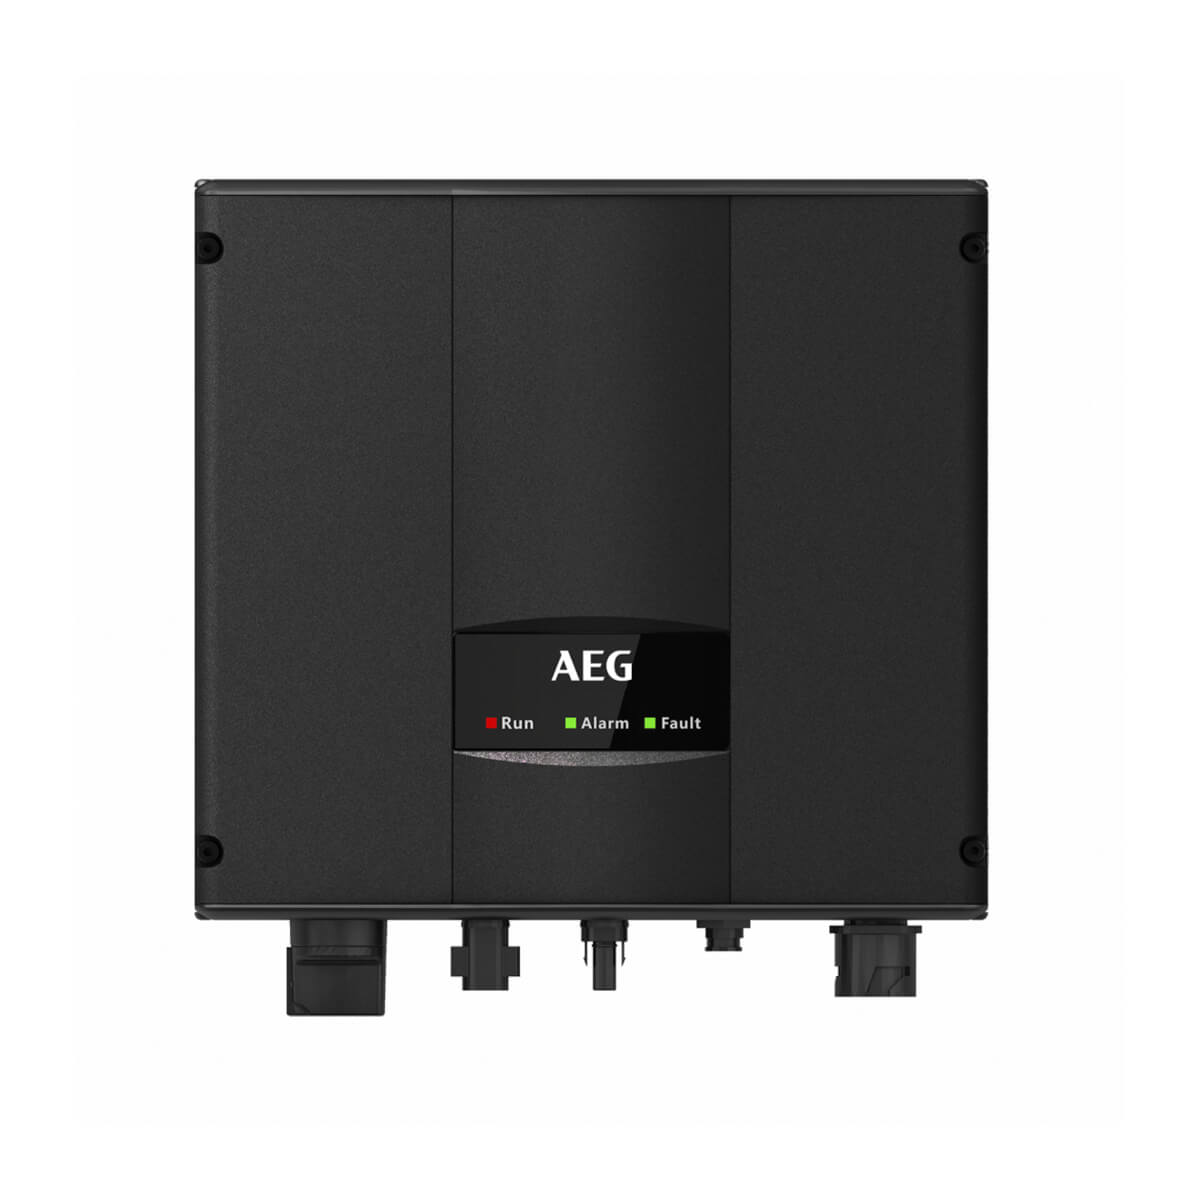 aeg 1.5kW inverter, aeg as-ir01 1.5kW inverter, aeg as-ir01-1500 inverter, aeg as-ir01-1500, aeg as-ir01 1.5kW